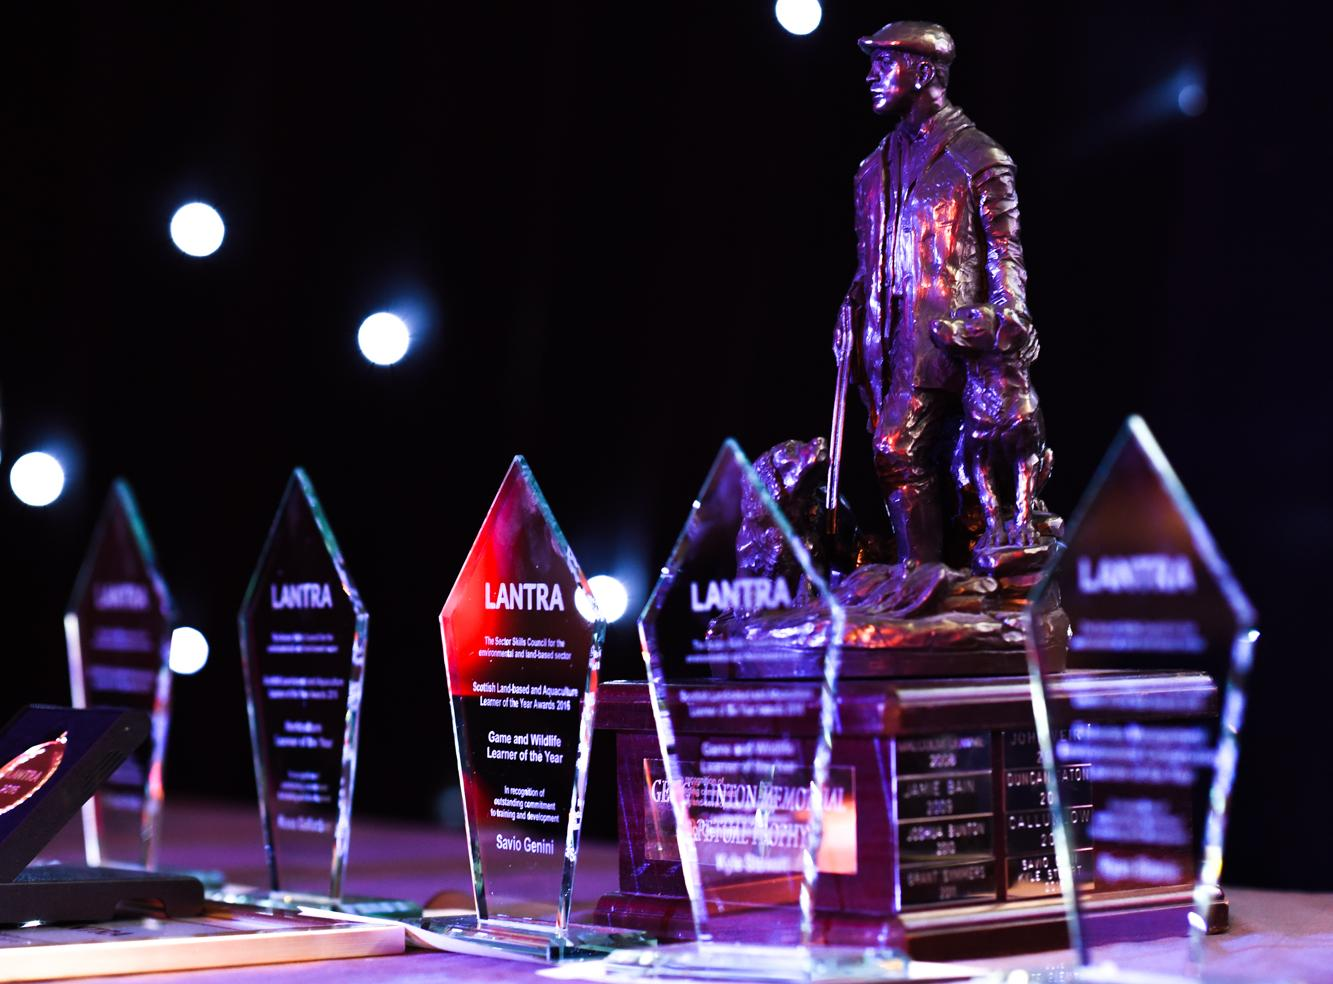 Trophies for Lantra's ALBAS